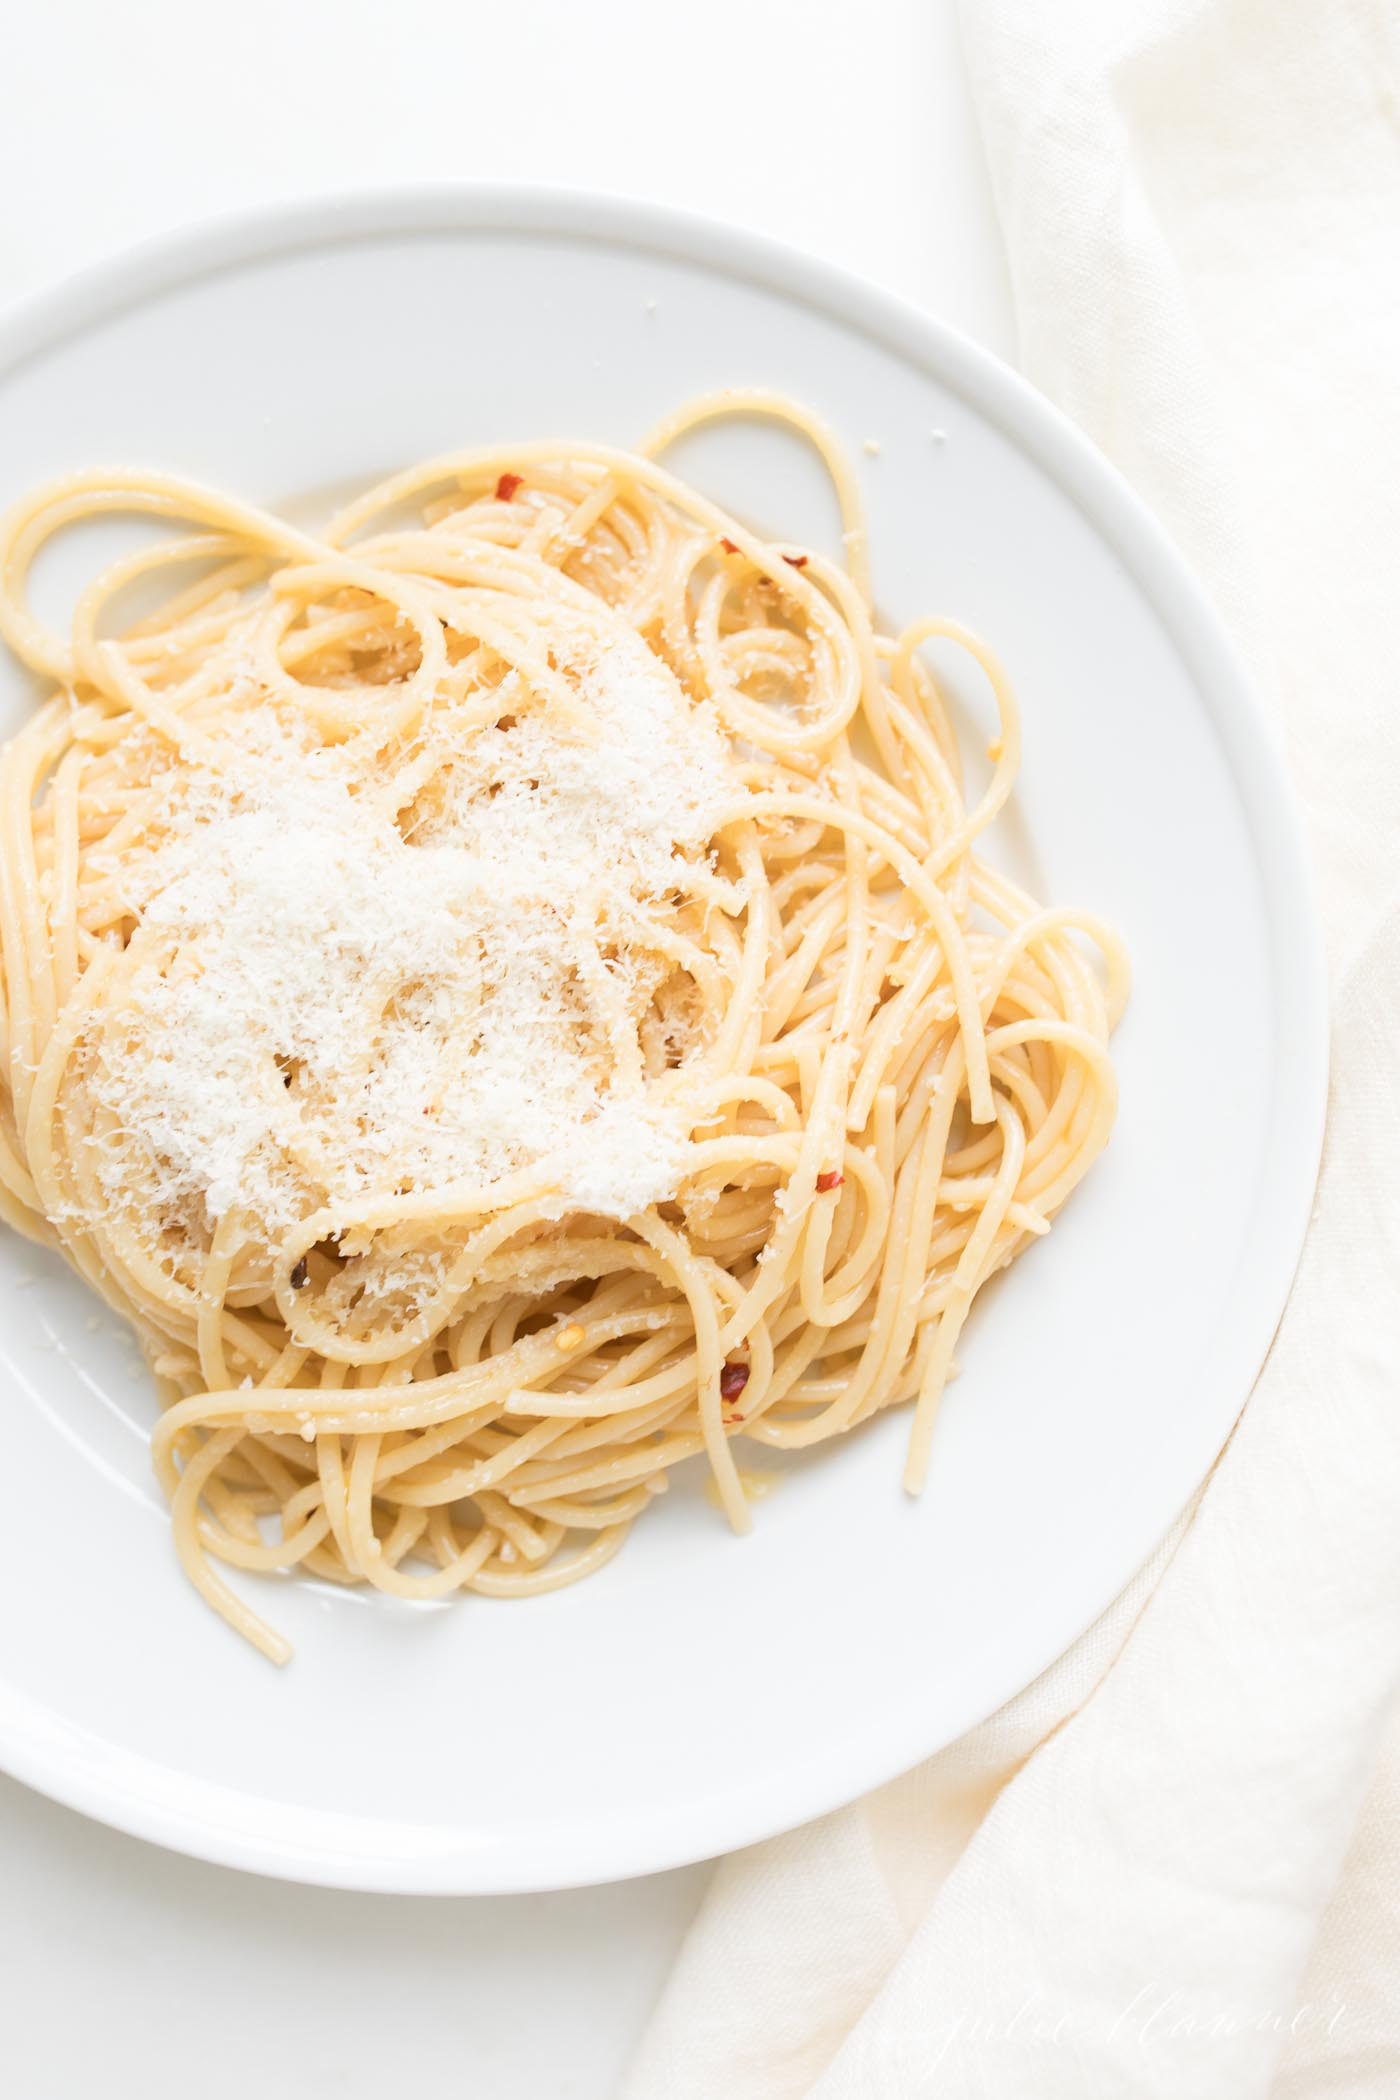 Fresh made pasta on a white plate covered in fresh grated cheese.